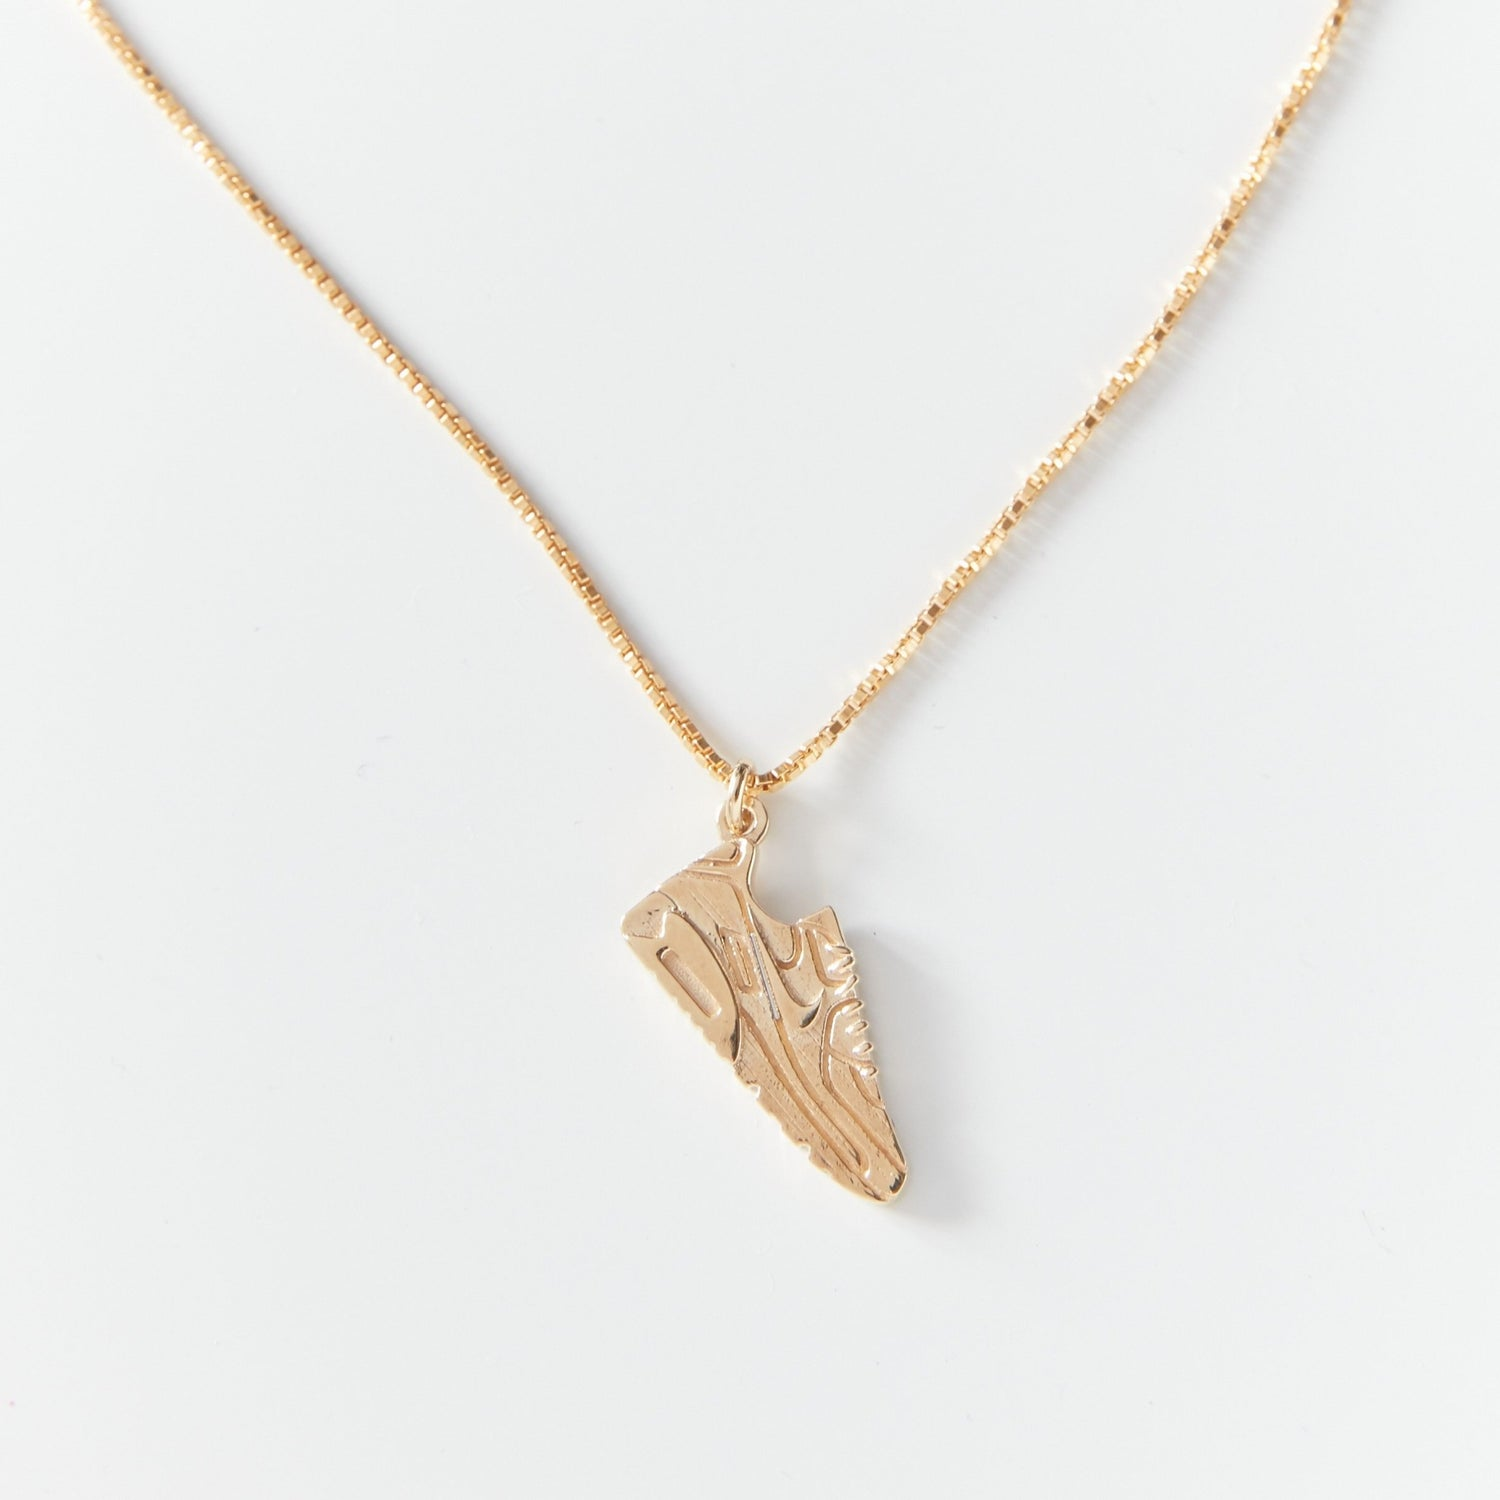 Air Max Necklace - Bing Bang Jewelry NYC